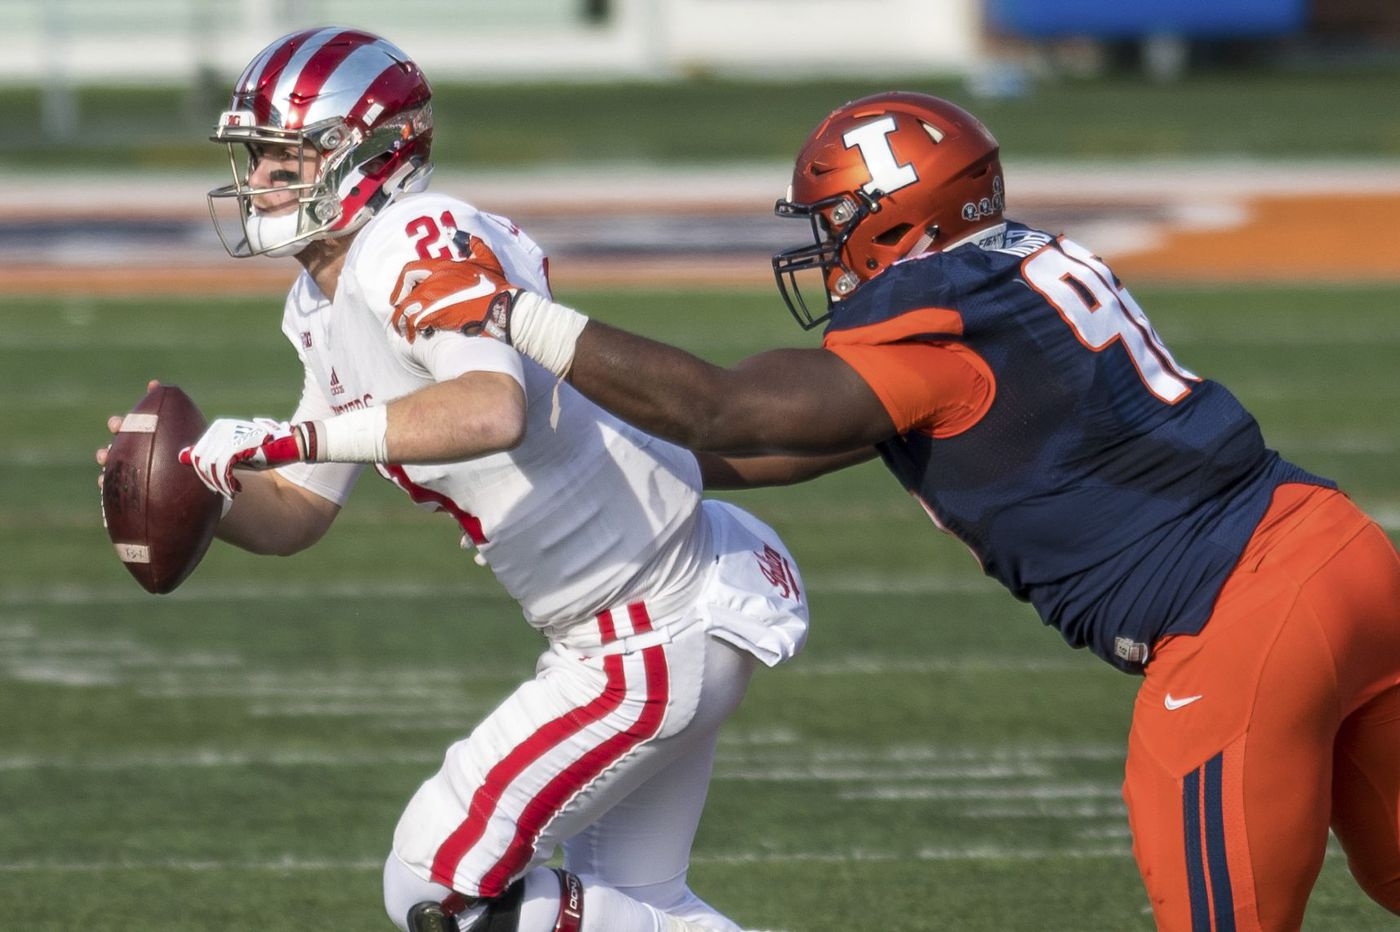 West Catholic grad Tymir Oliver will try to help Illinois stop Penn State's offense